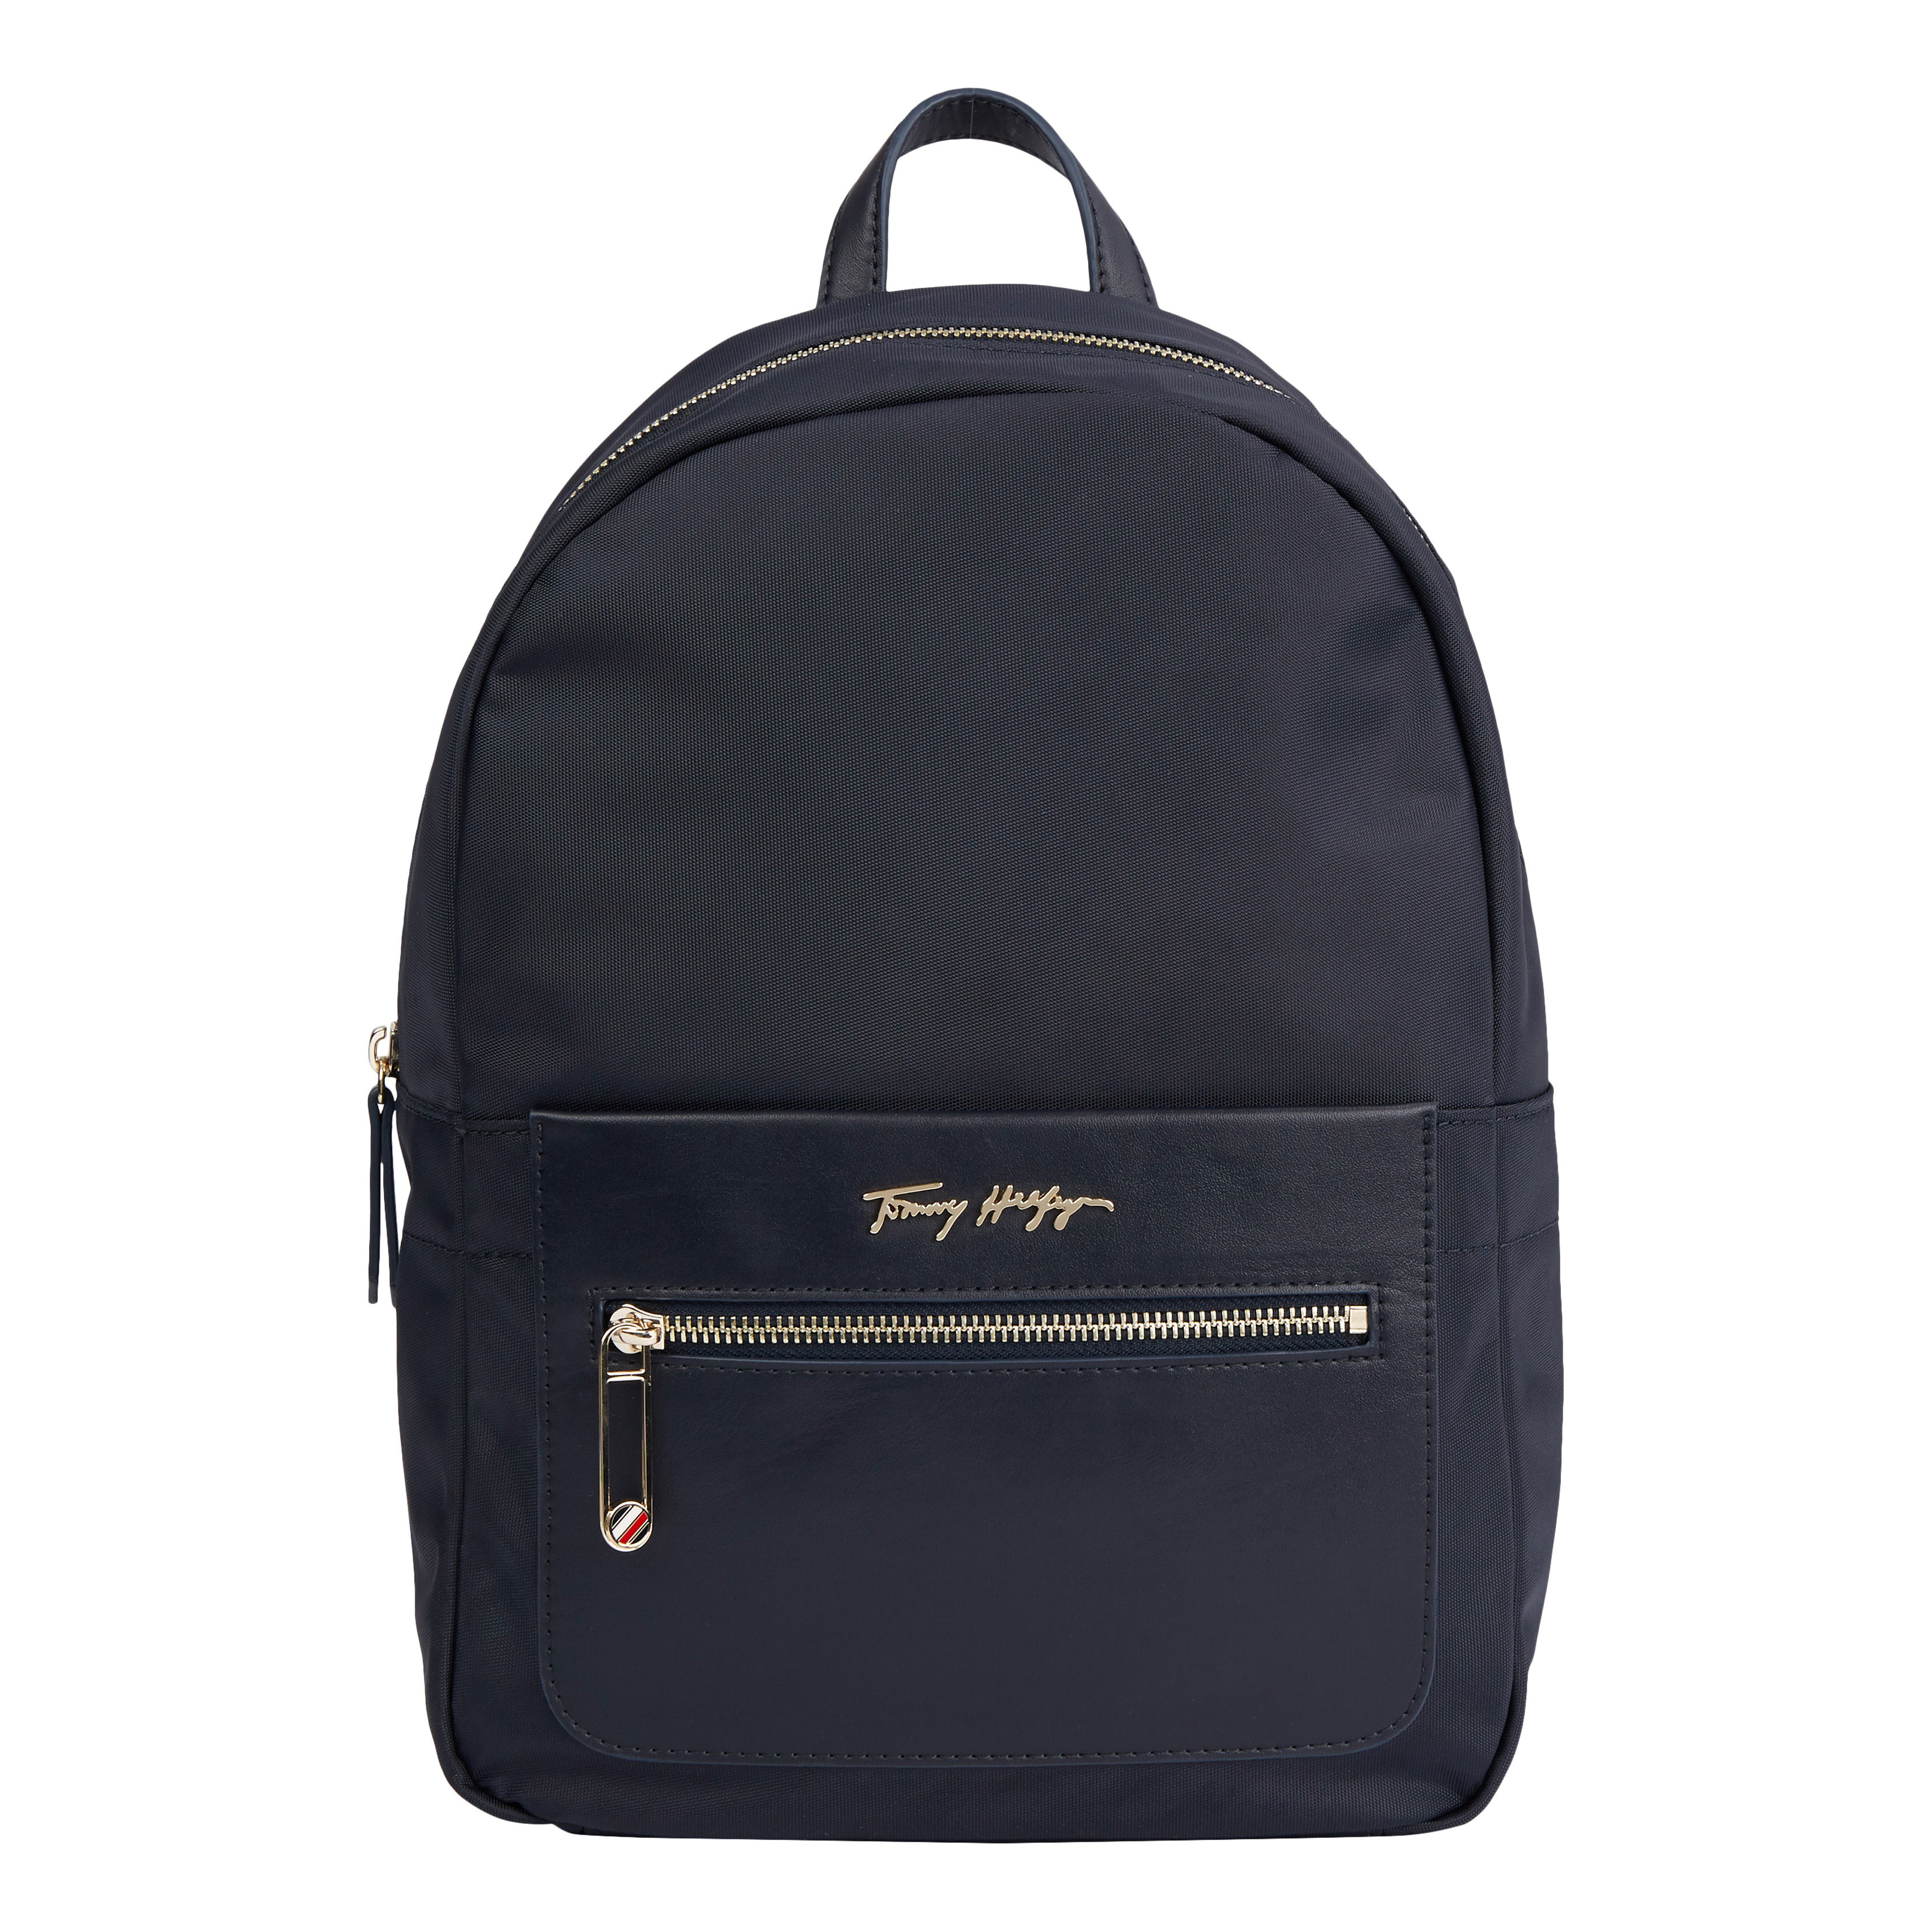 TOMMY HILFIGER Marroquinería Mochilas Corporate AW0AW10213-0GY